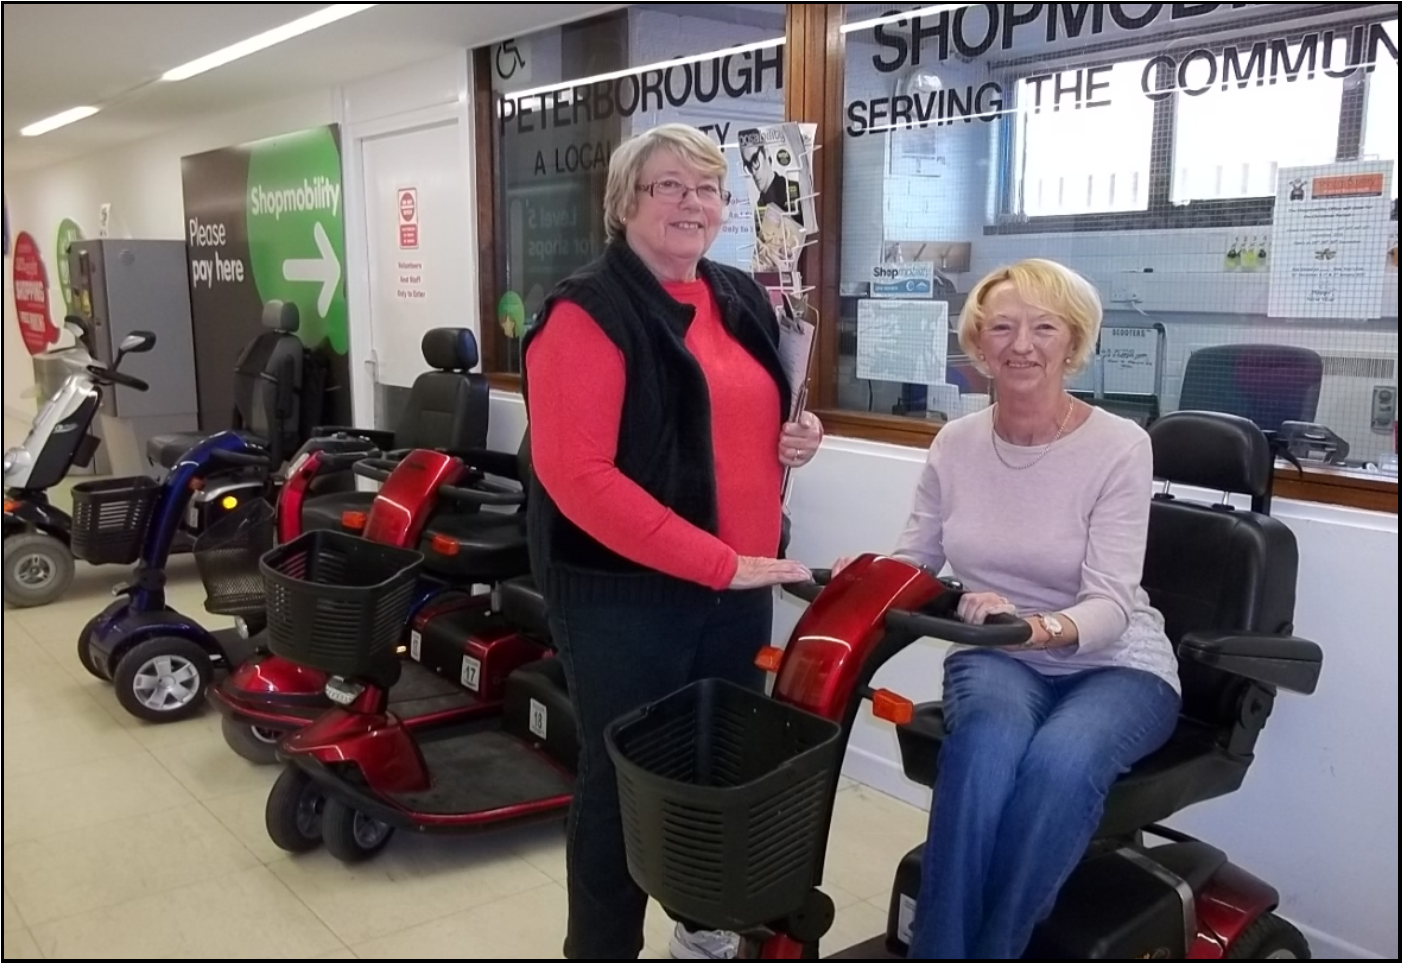 Shopmobility Peterborough Our Service